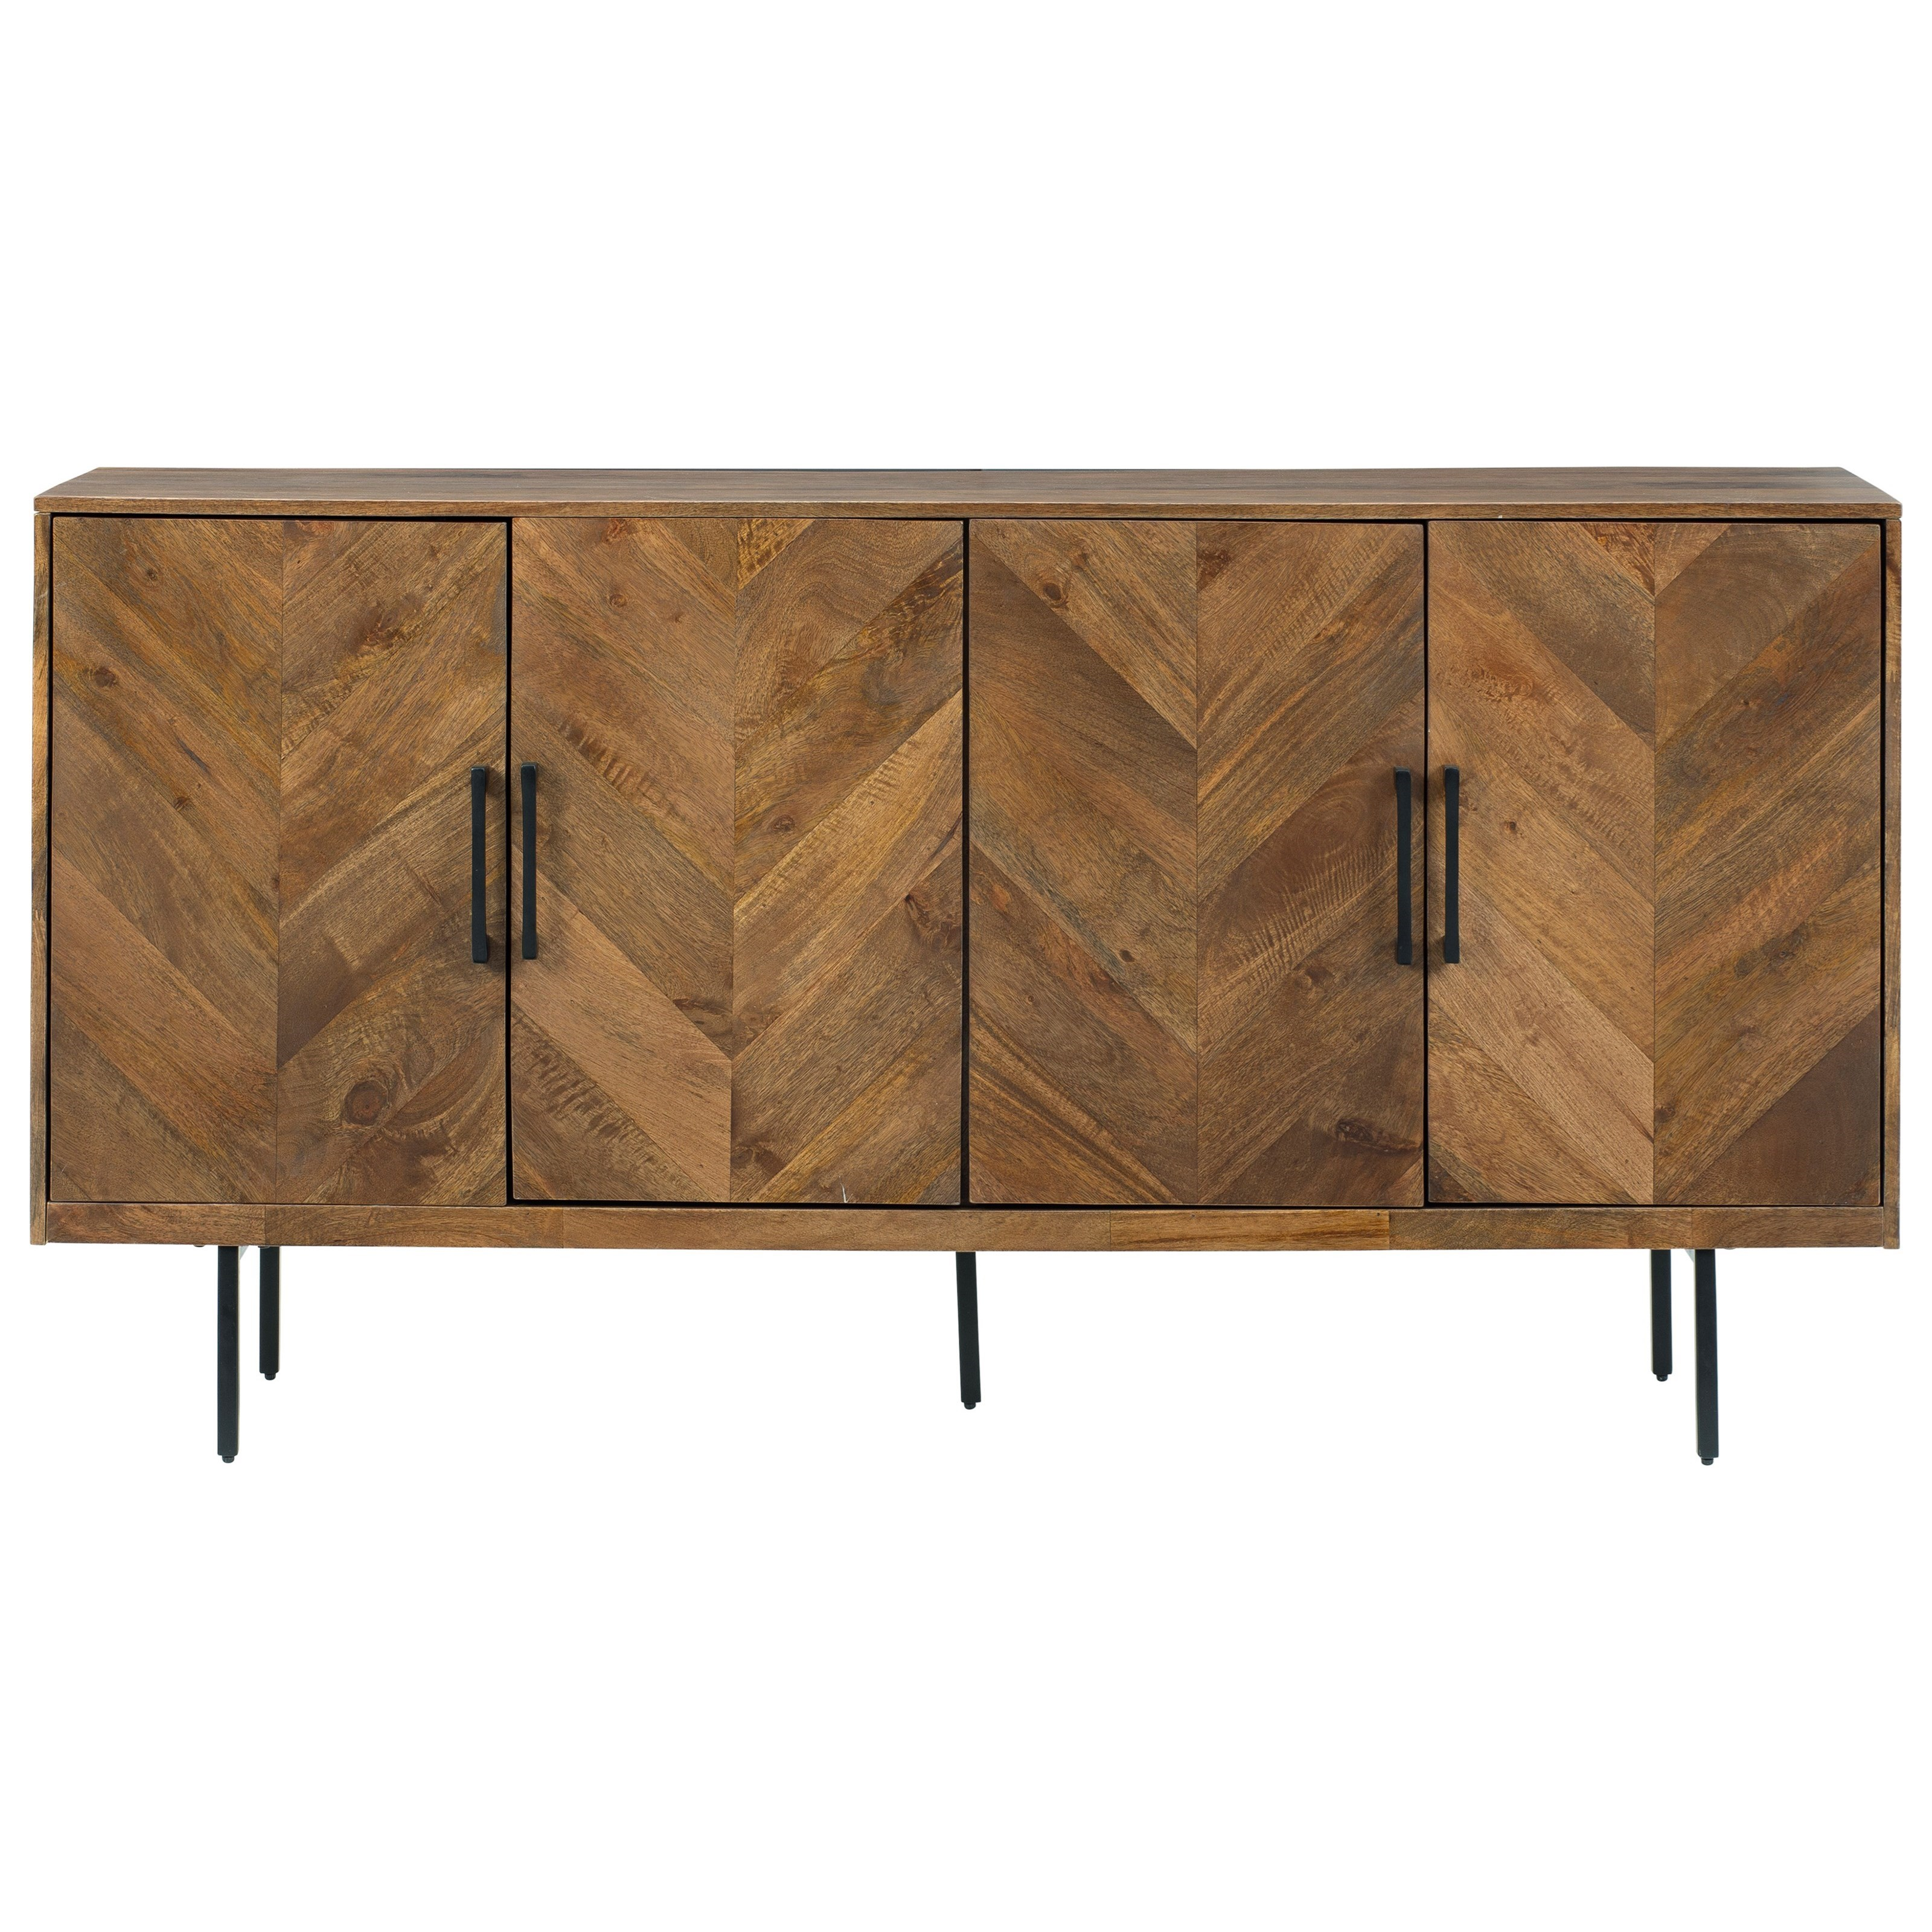 Prattville Accent Cabinet by Signature Design by Ashley at Zak's Warehouse Clearance Center